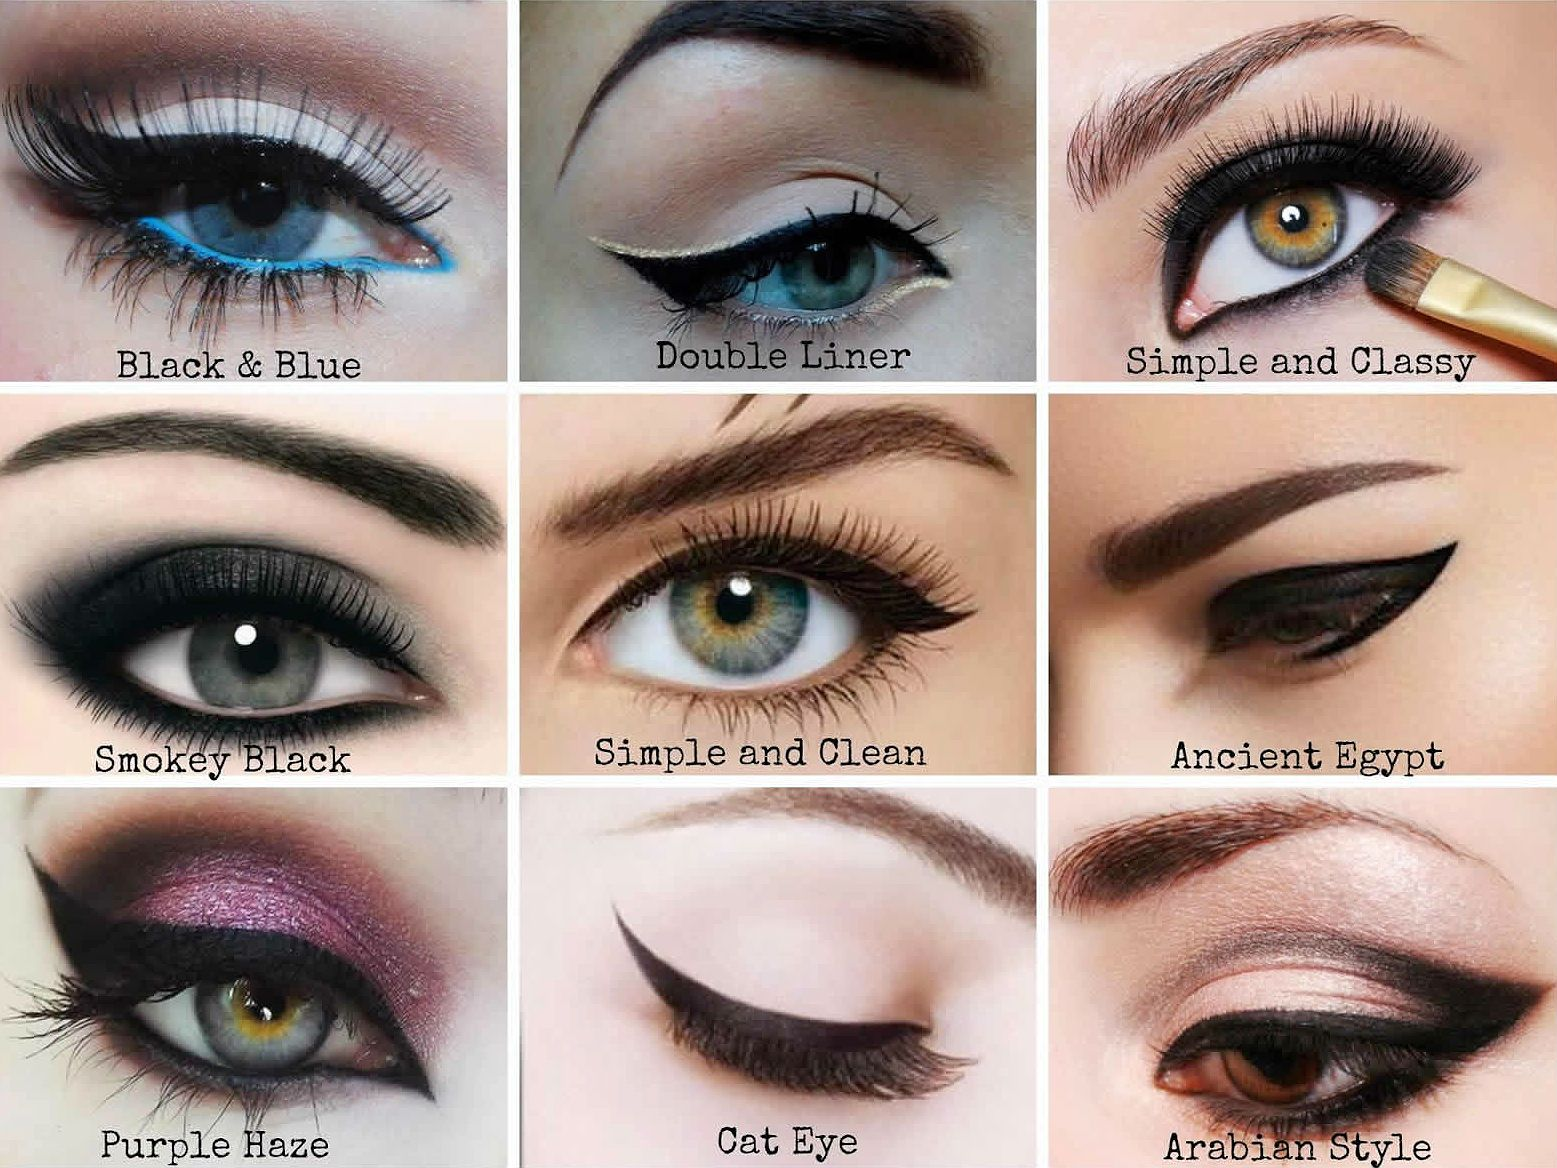 Under Eye Makeup In 2020 Under Eye Makeup Dramatic Eye Makeup Felt Tip Eyeliner - Augenlid Schminken